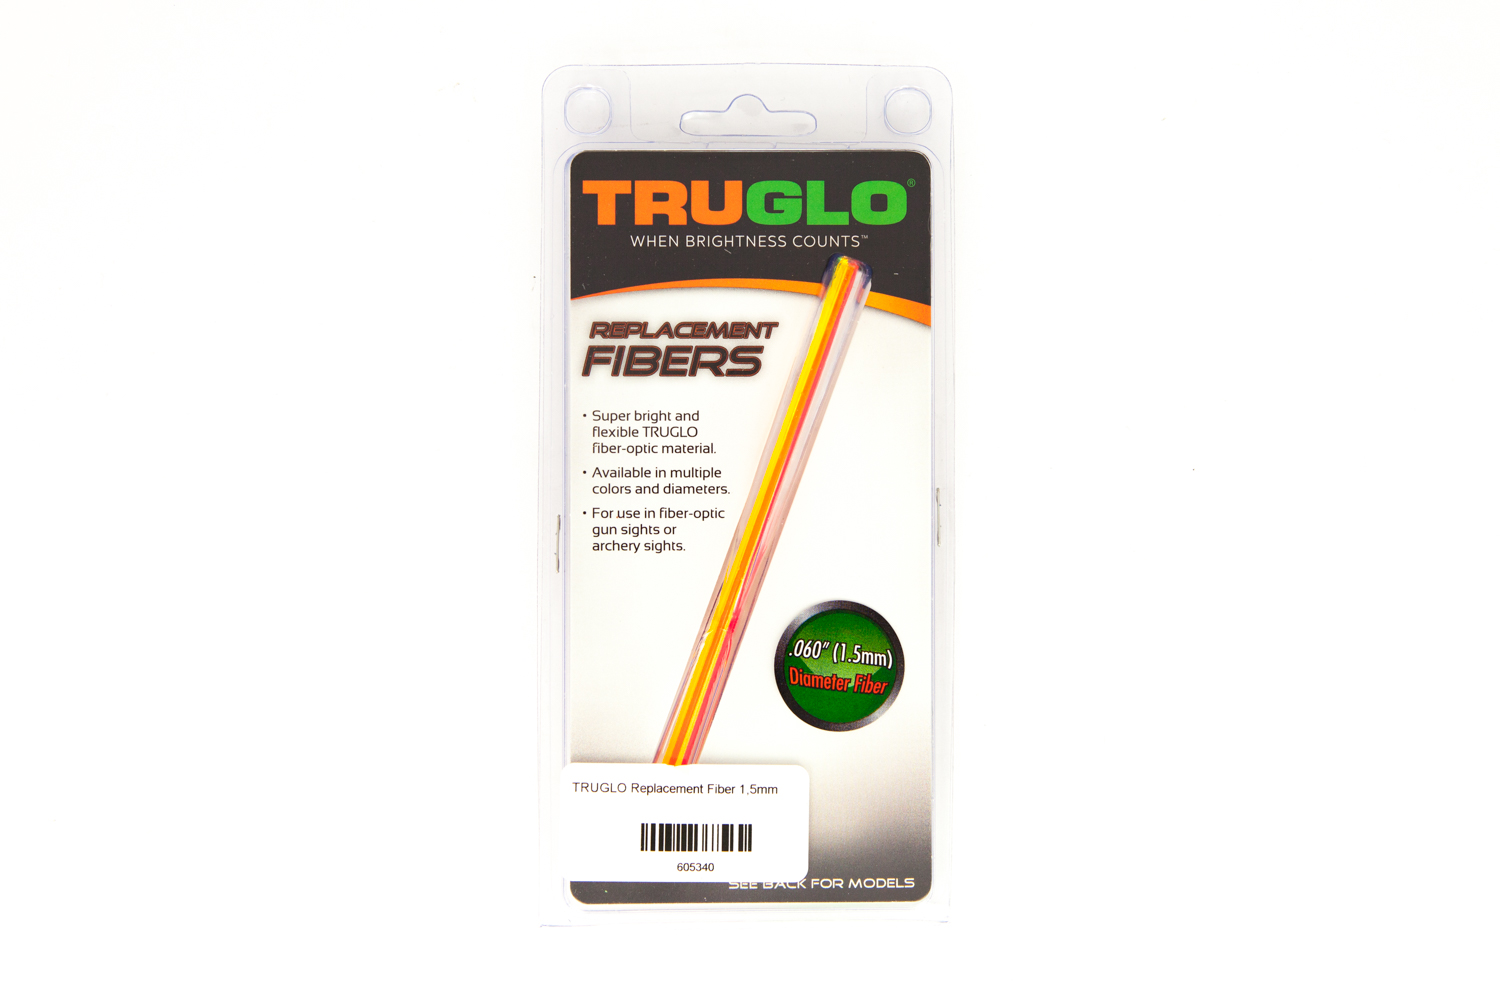 TRUGLO Replacement Fiber 1,5mm